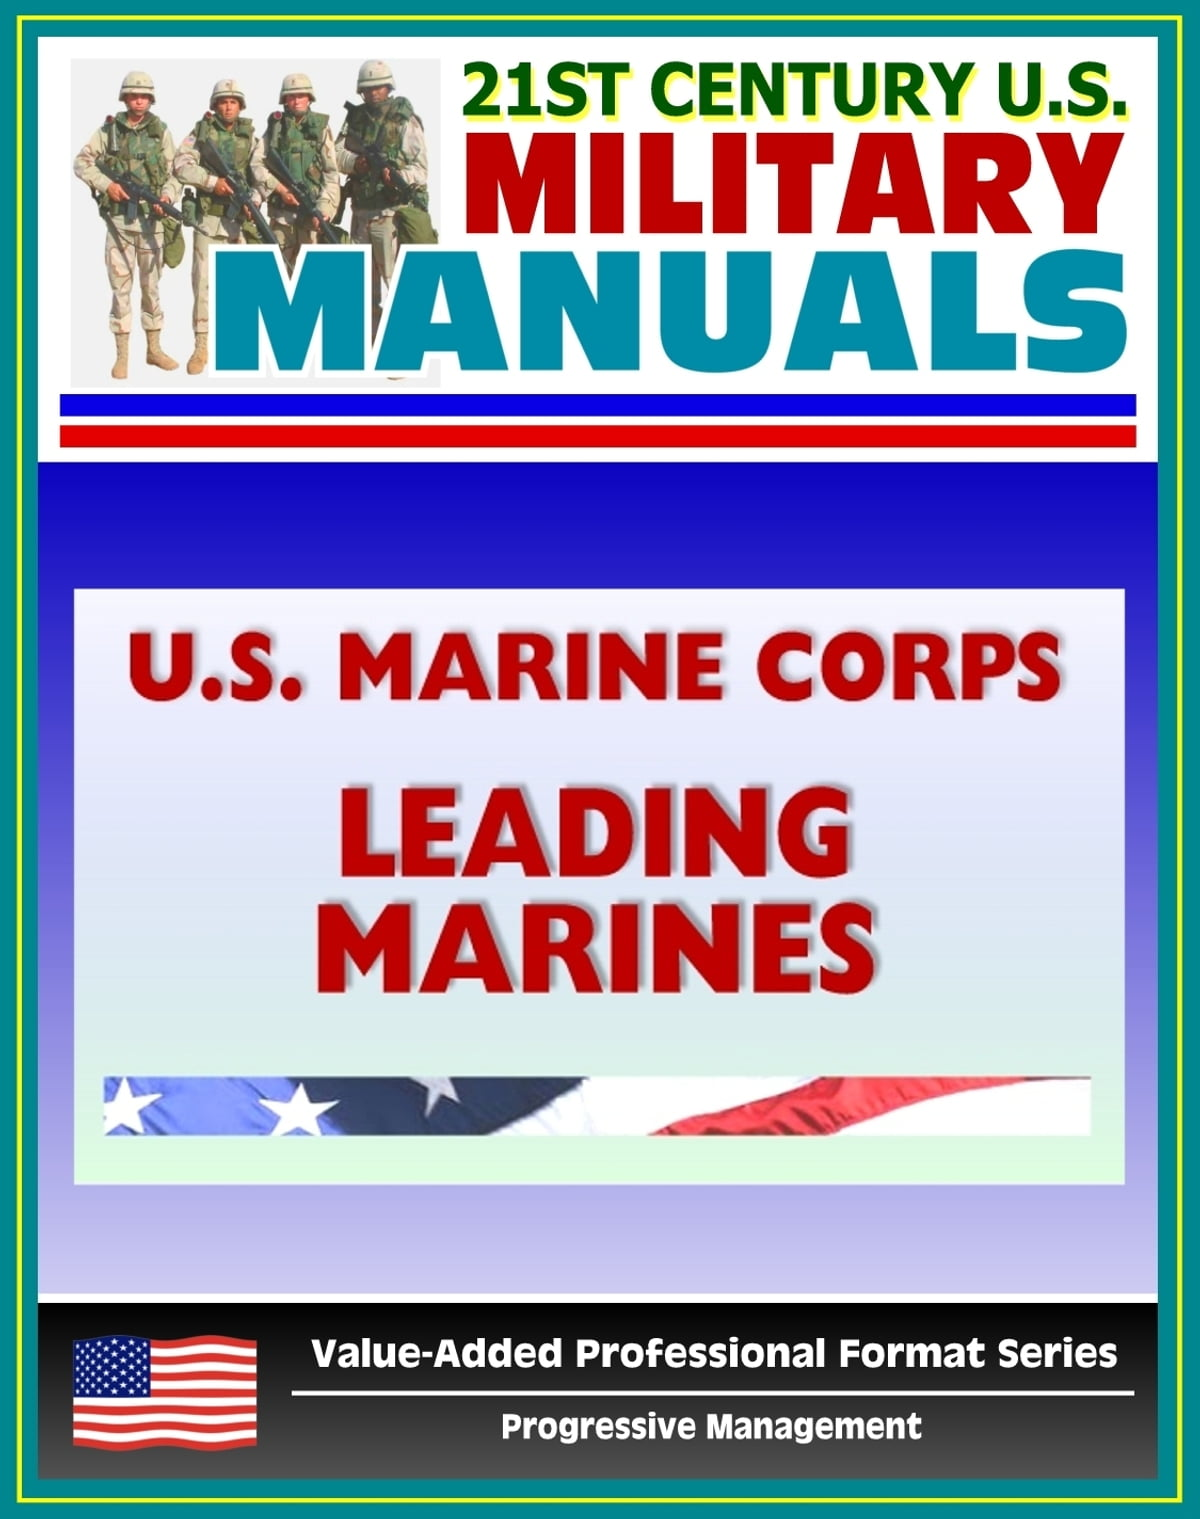 21st Century U.S. Military Manuals: U.S. Marine Corps (USMC) Leading  Marines - Marine Corps Warfighting Publication (MCWP) 6-11 eBook by  Progressive ...